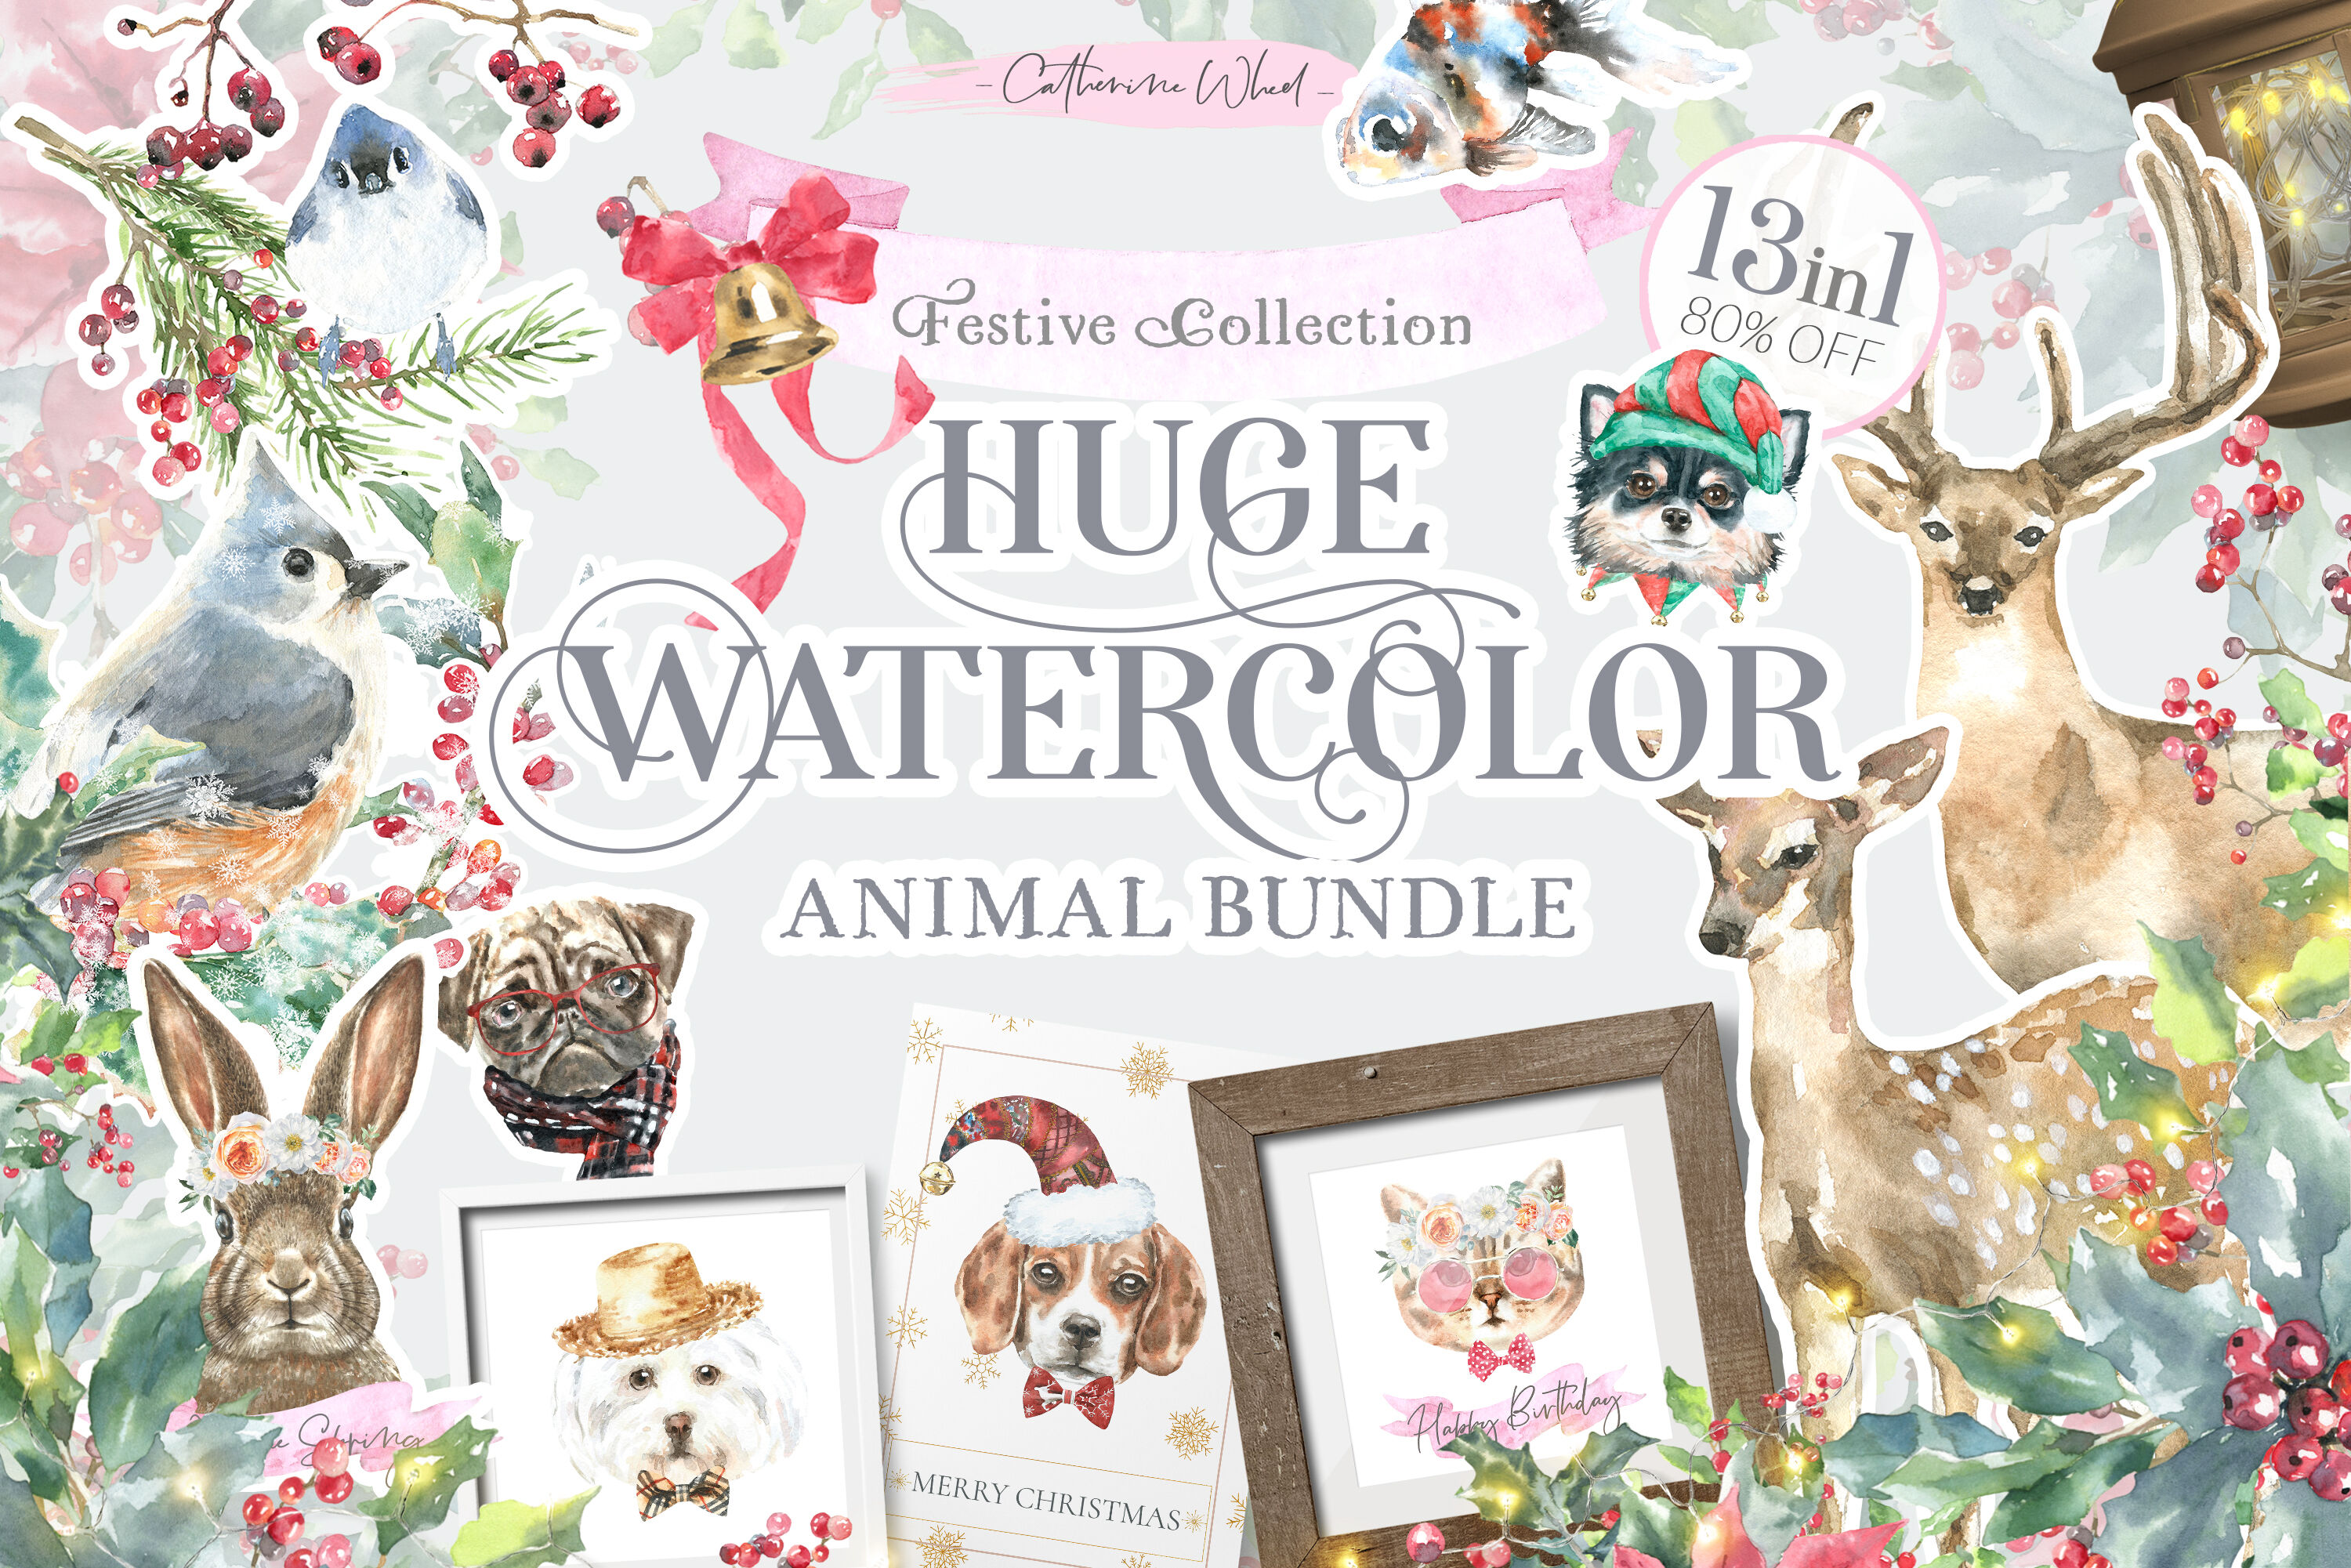 Watercolor Animals Bundle Sale Free 13 In 1 By Catherine Wheel